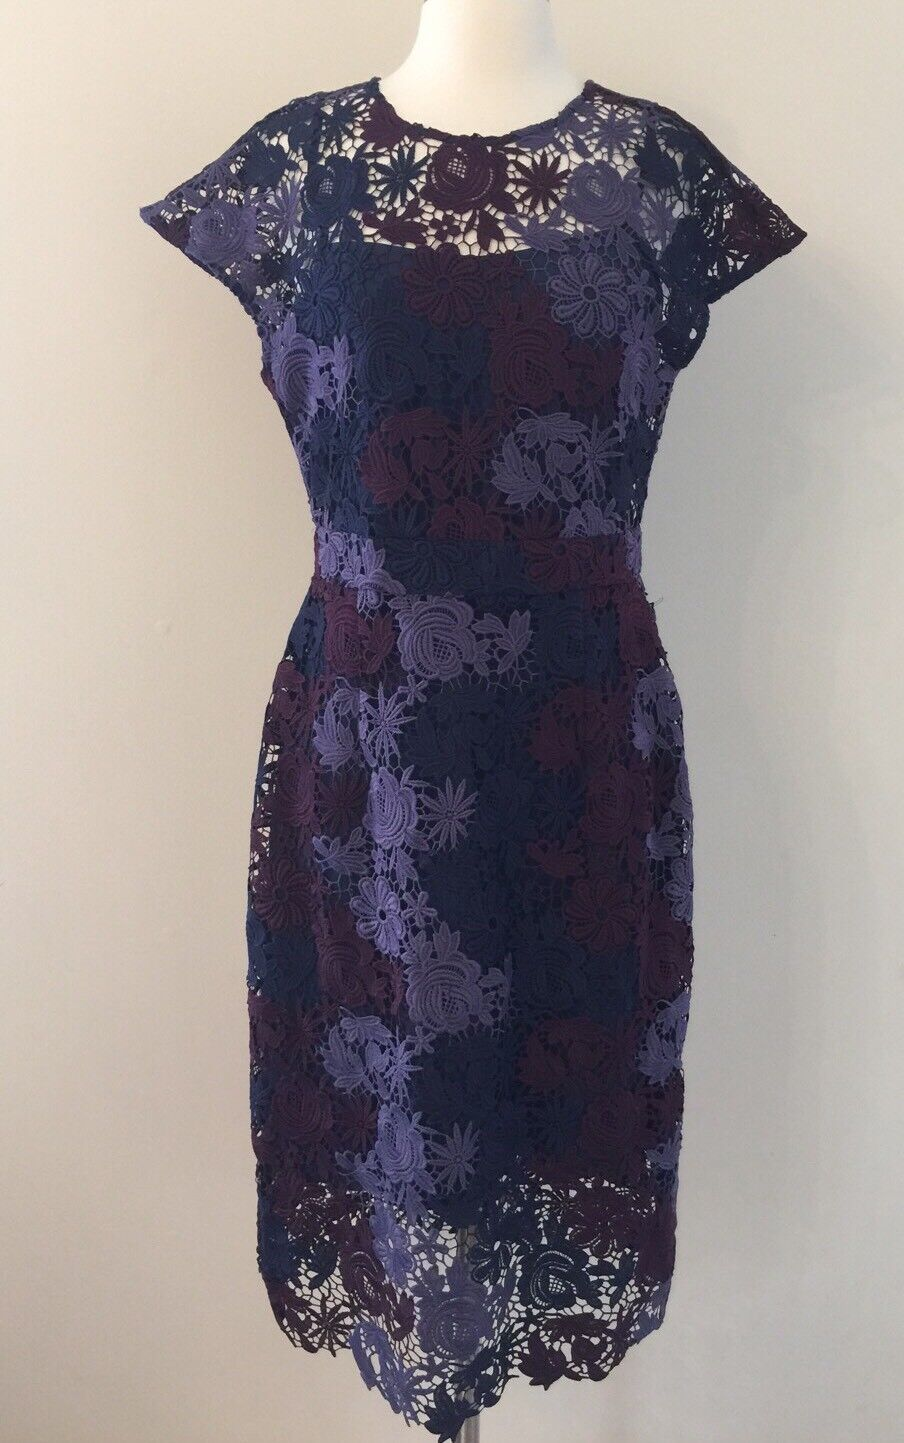 Jcrew Factory Scalloped Lace Dress Sz 6 Purple bluee Burgundy ONE OF A KIND RARE